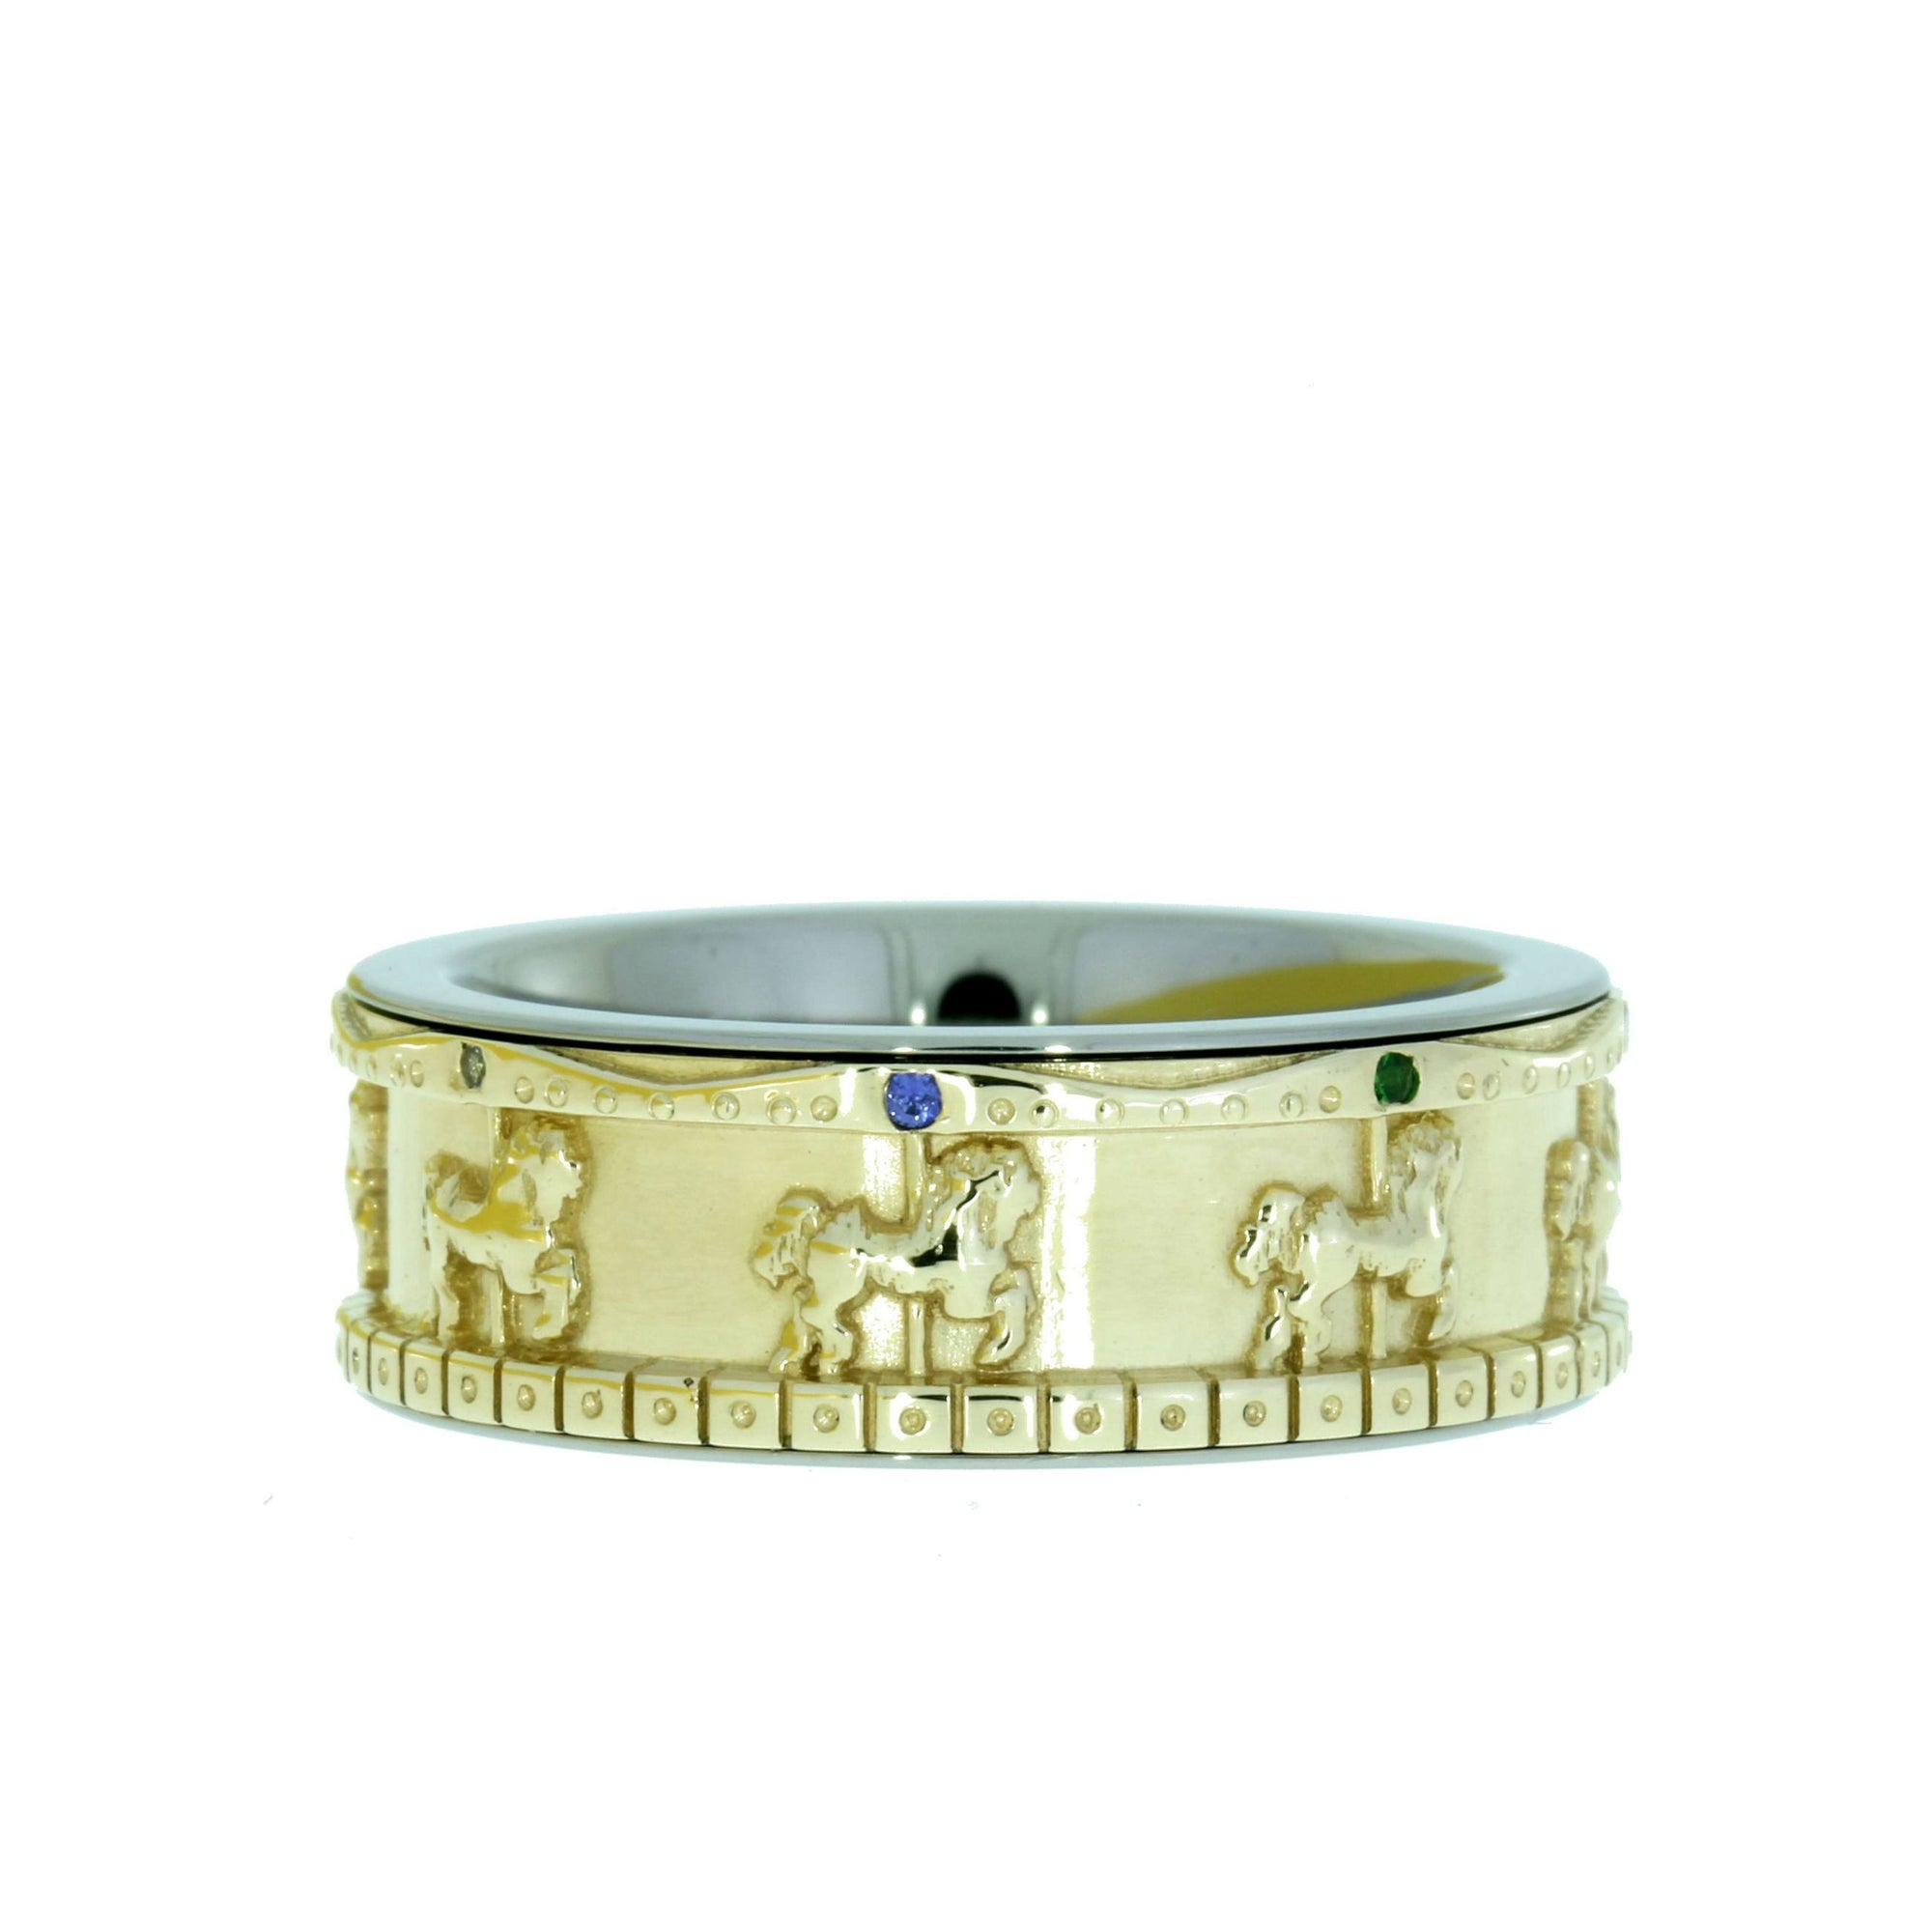 Carousel Ring with Horses